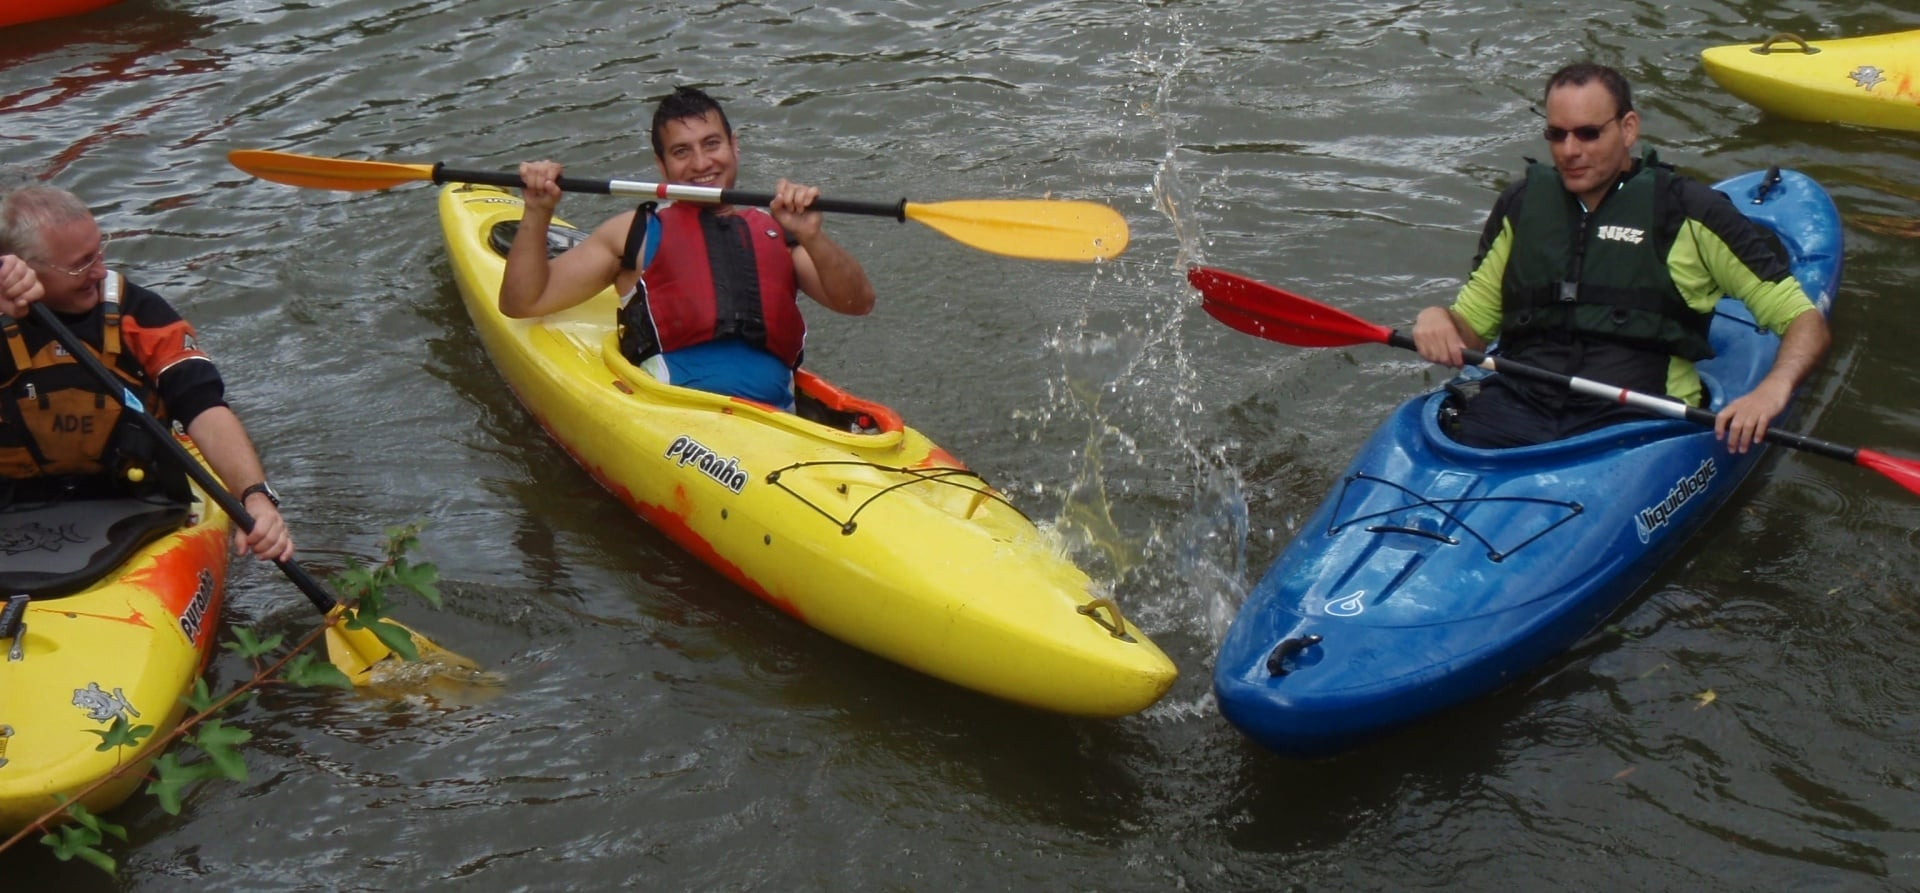 Half Day Kayaking Lesson - Warwickshire-2